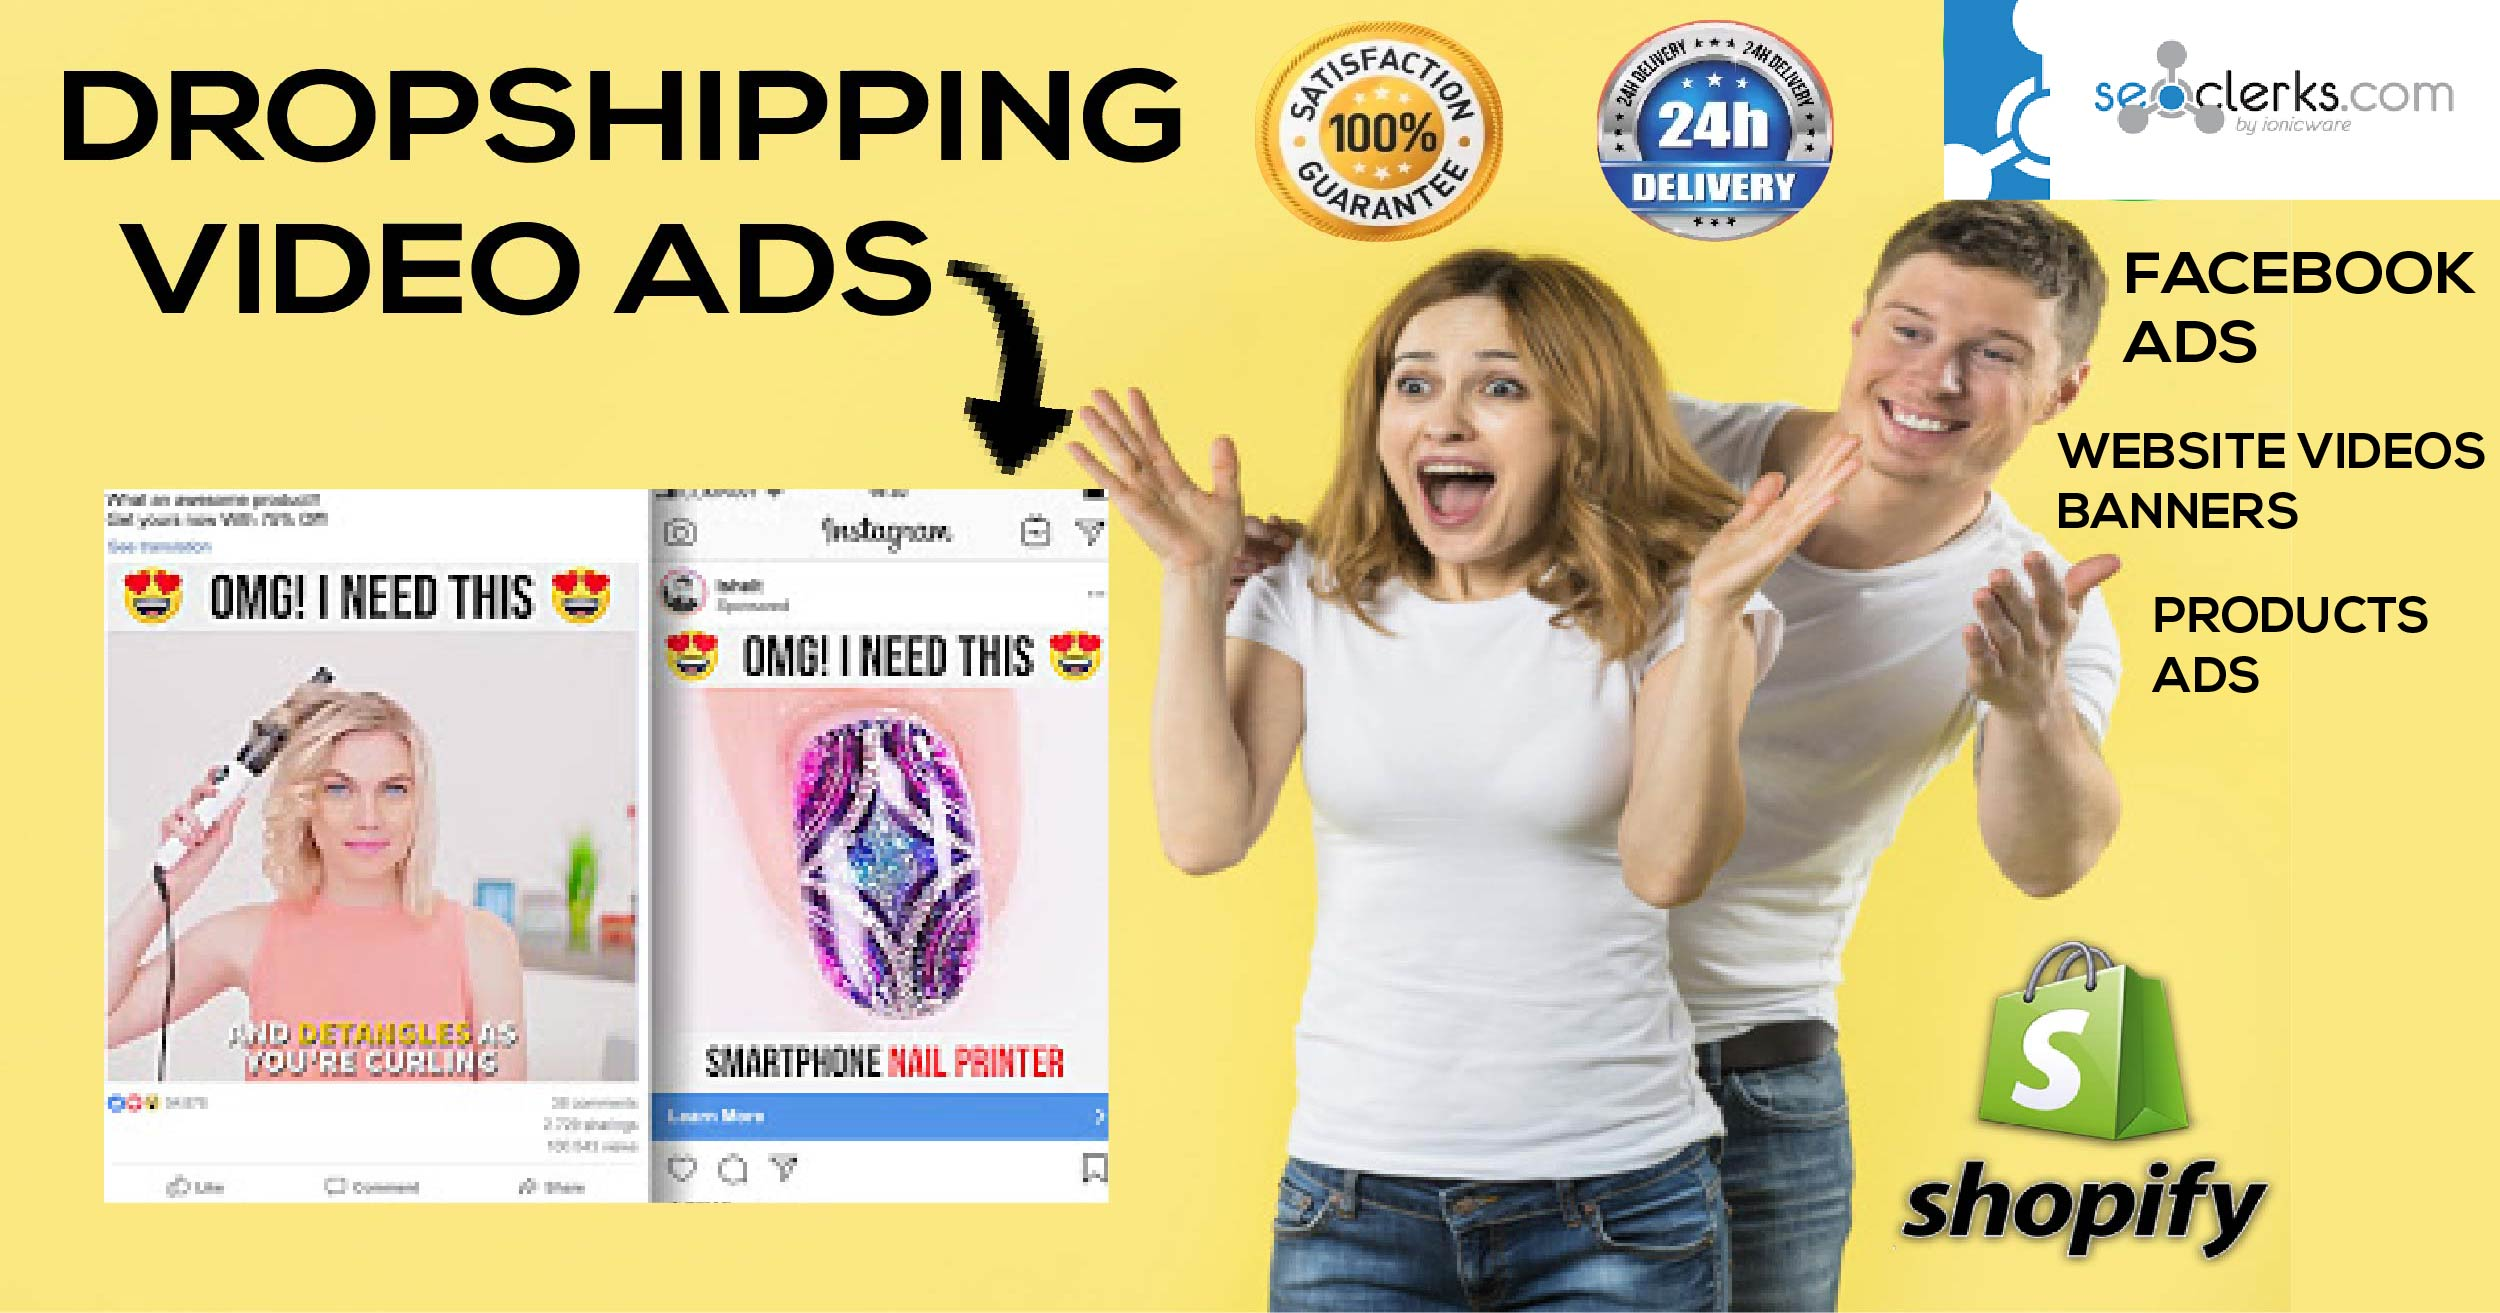 I will create eye catchy dropshipping ads and facebook video ads